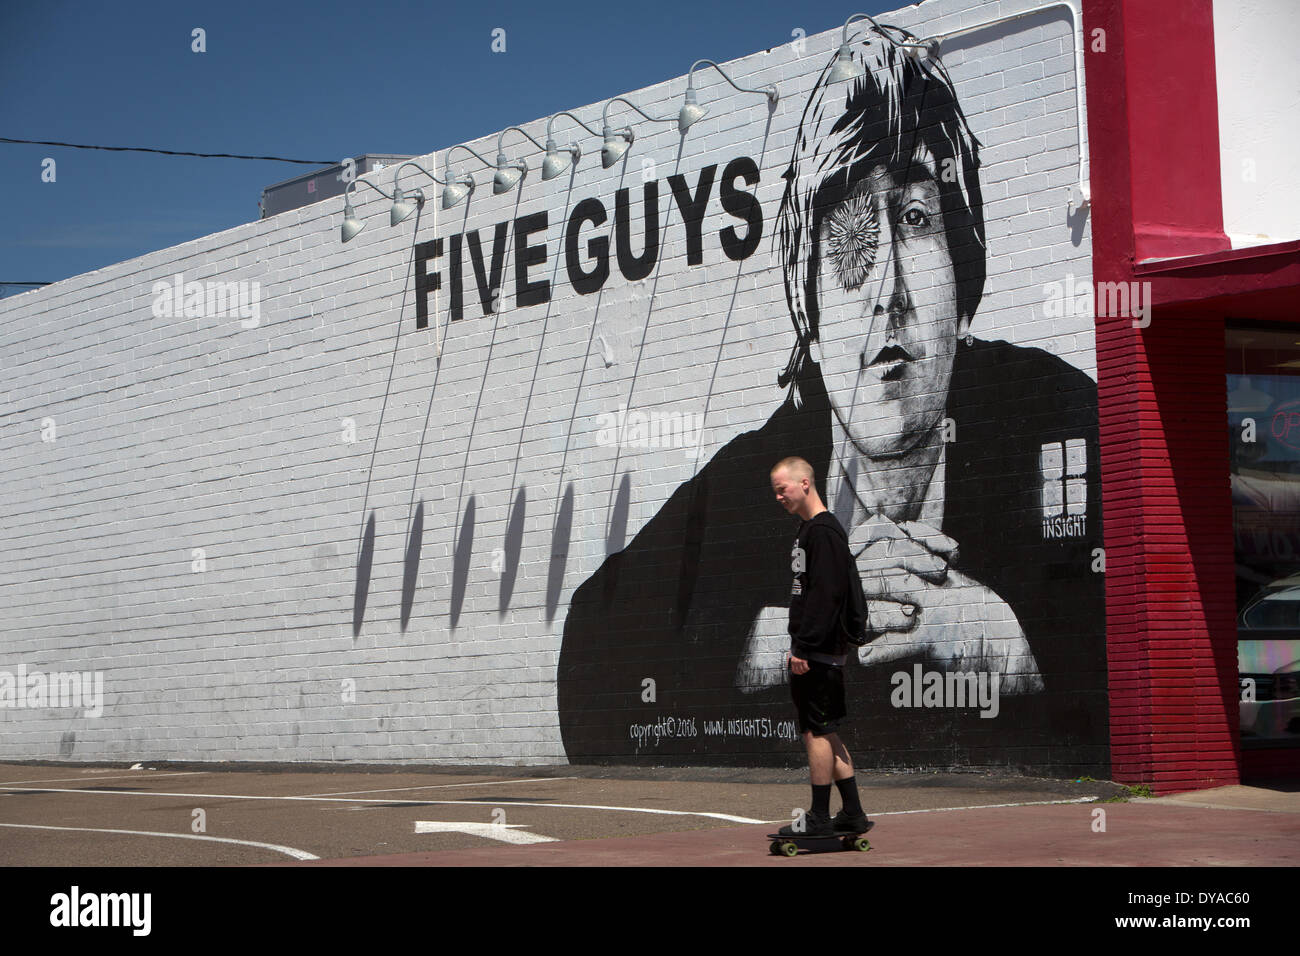 Skater in front of a John Lennon mural on the wall of a Five Guys burger restaurant, in April 2014. - Stock Image